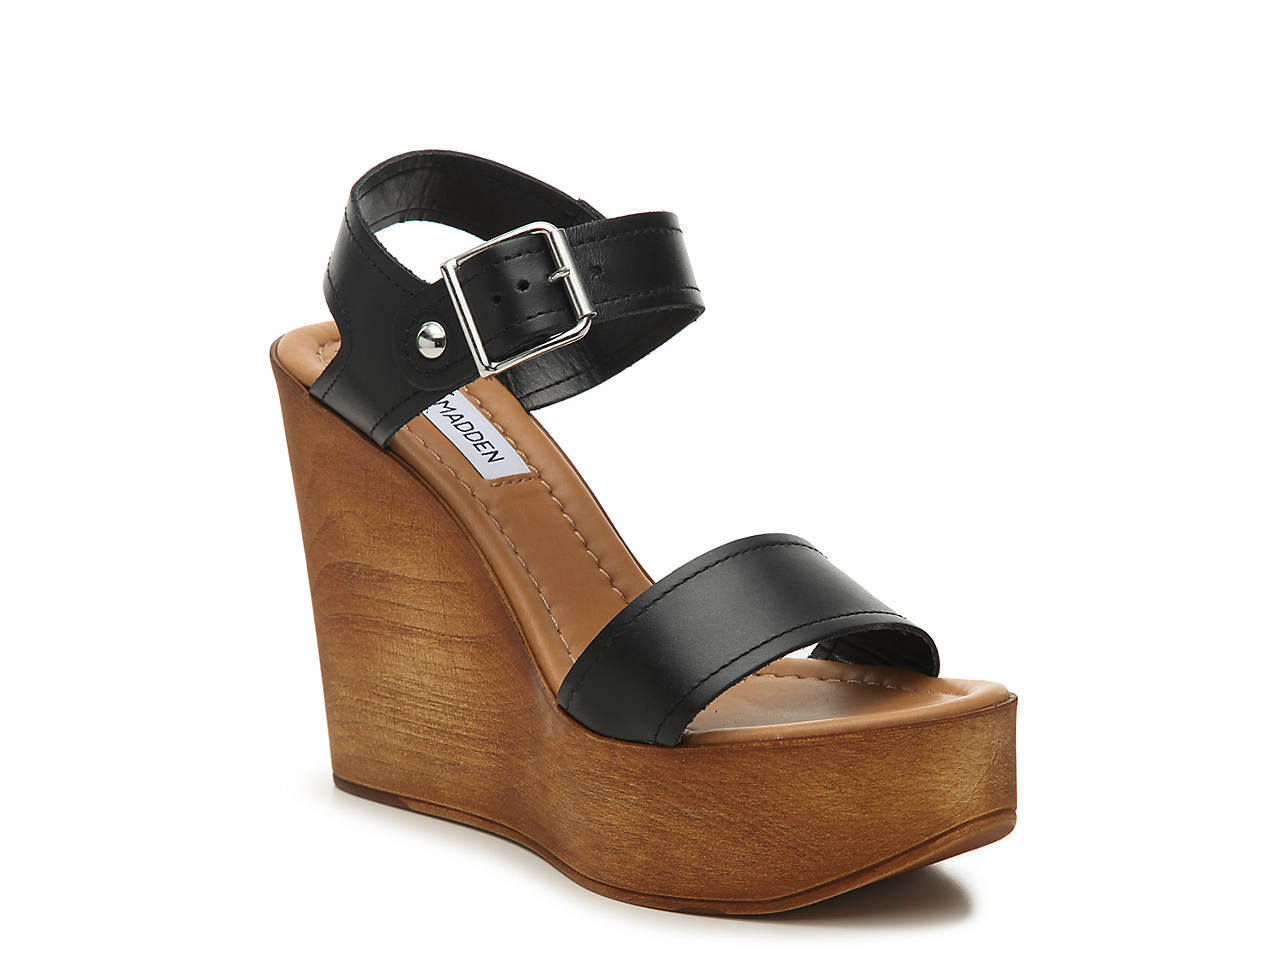 9f93403a0152 Steve Madden Candis Wedge Sandal Women s Shoes